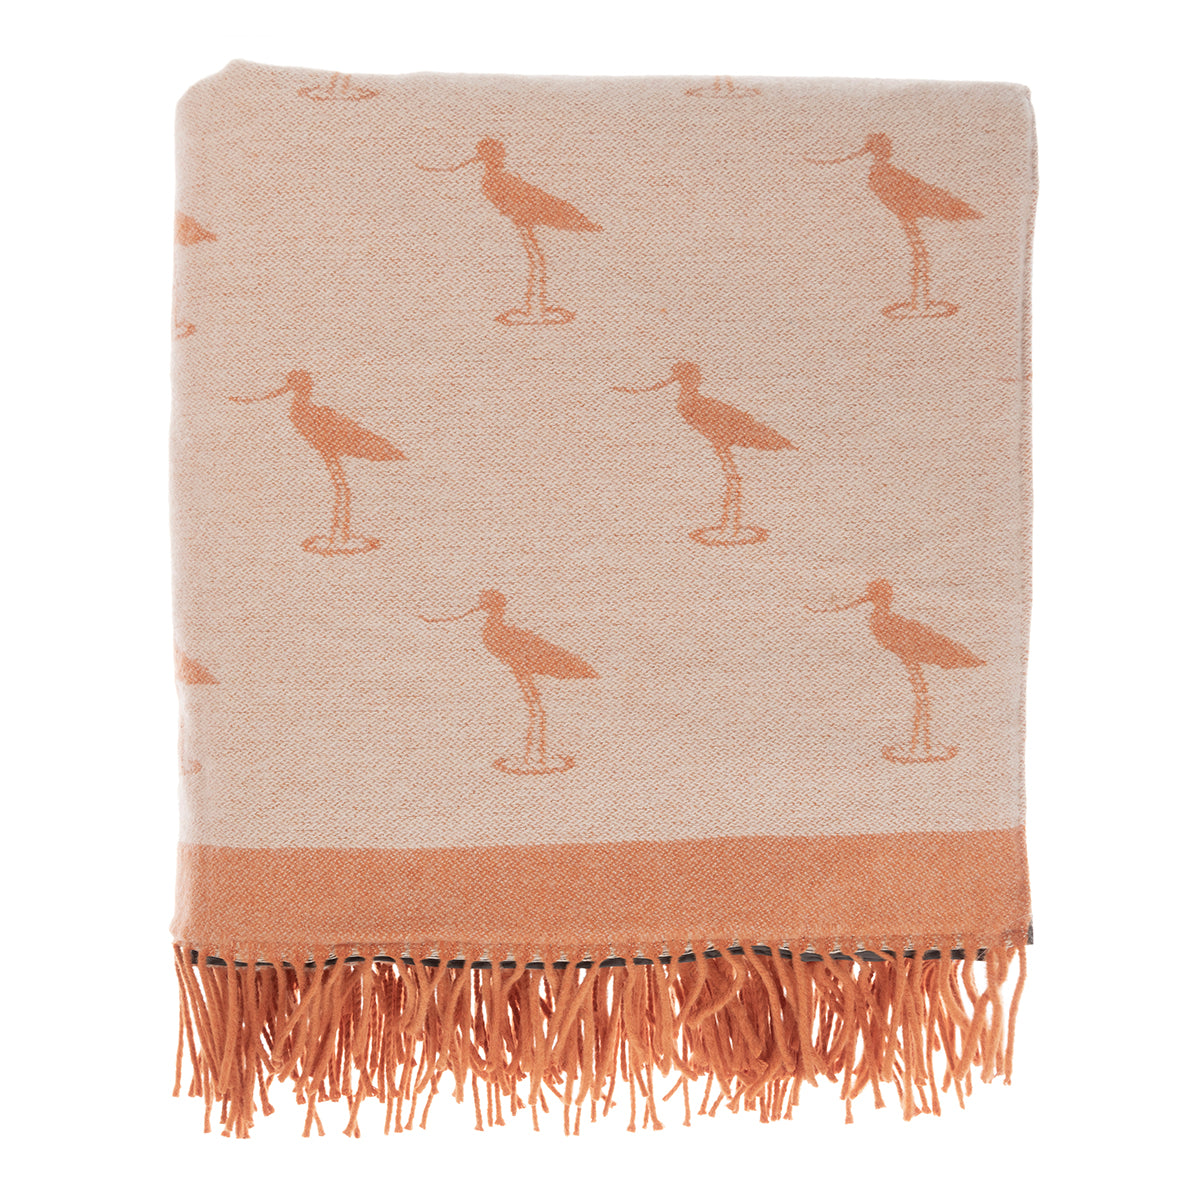 Coastal Birds Knitted Picnic Blanket